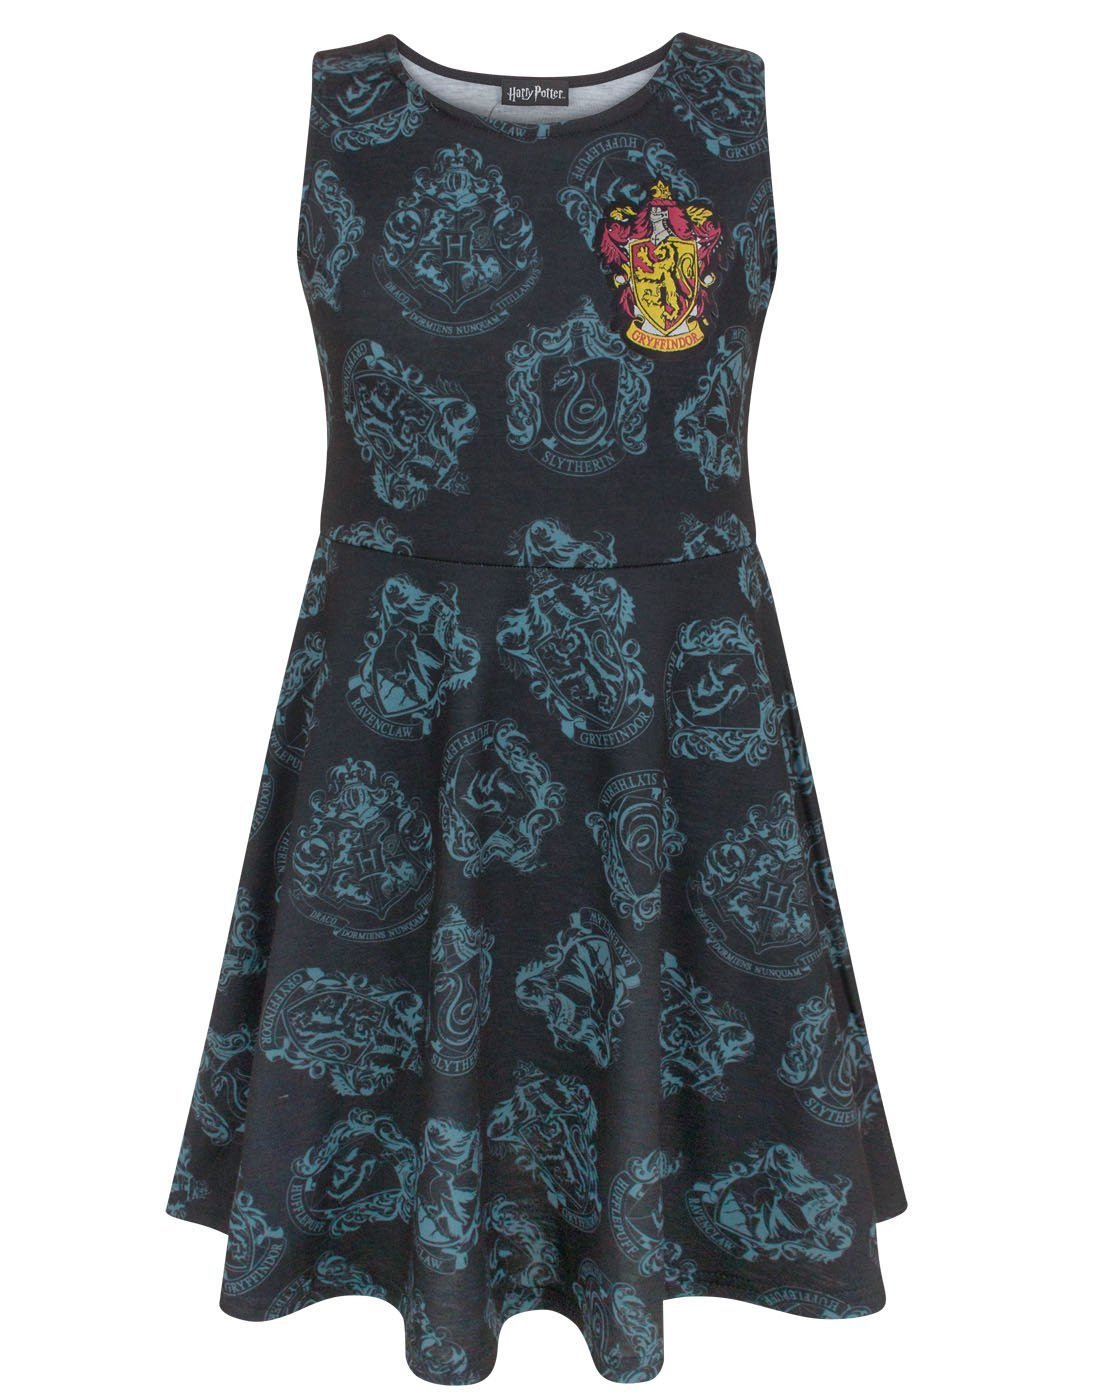 Harry Potter Hogwarts Houses Girl's Skater Dress